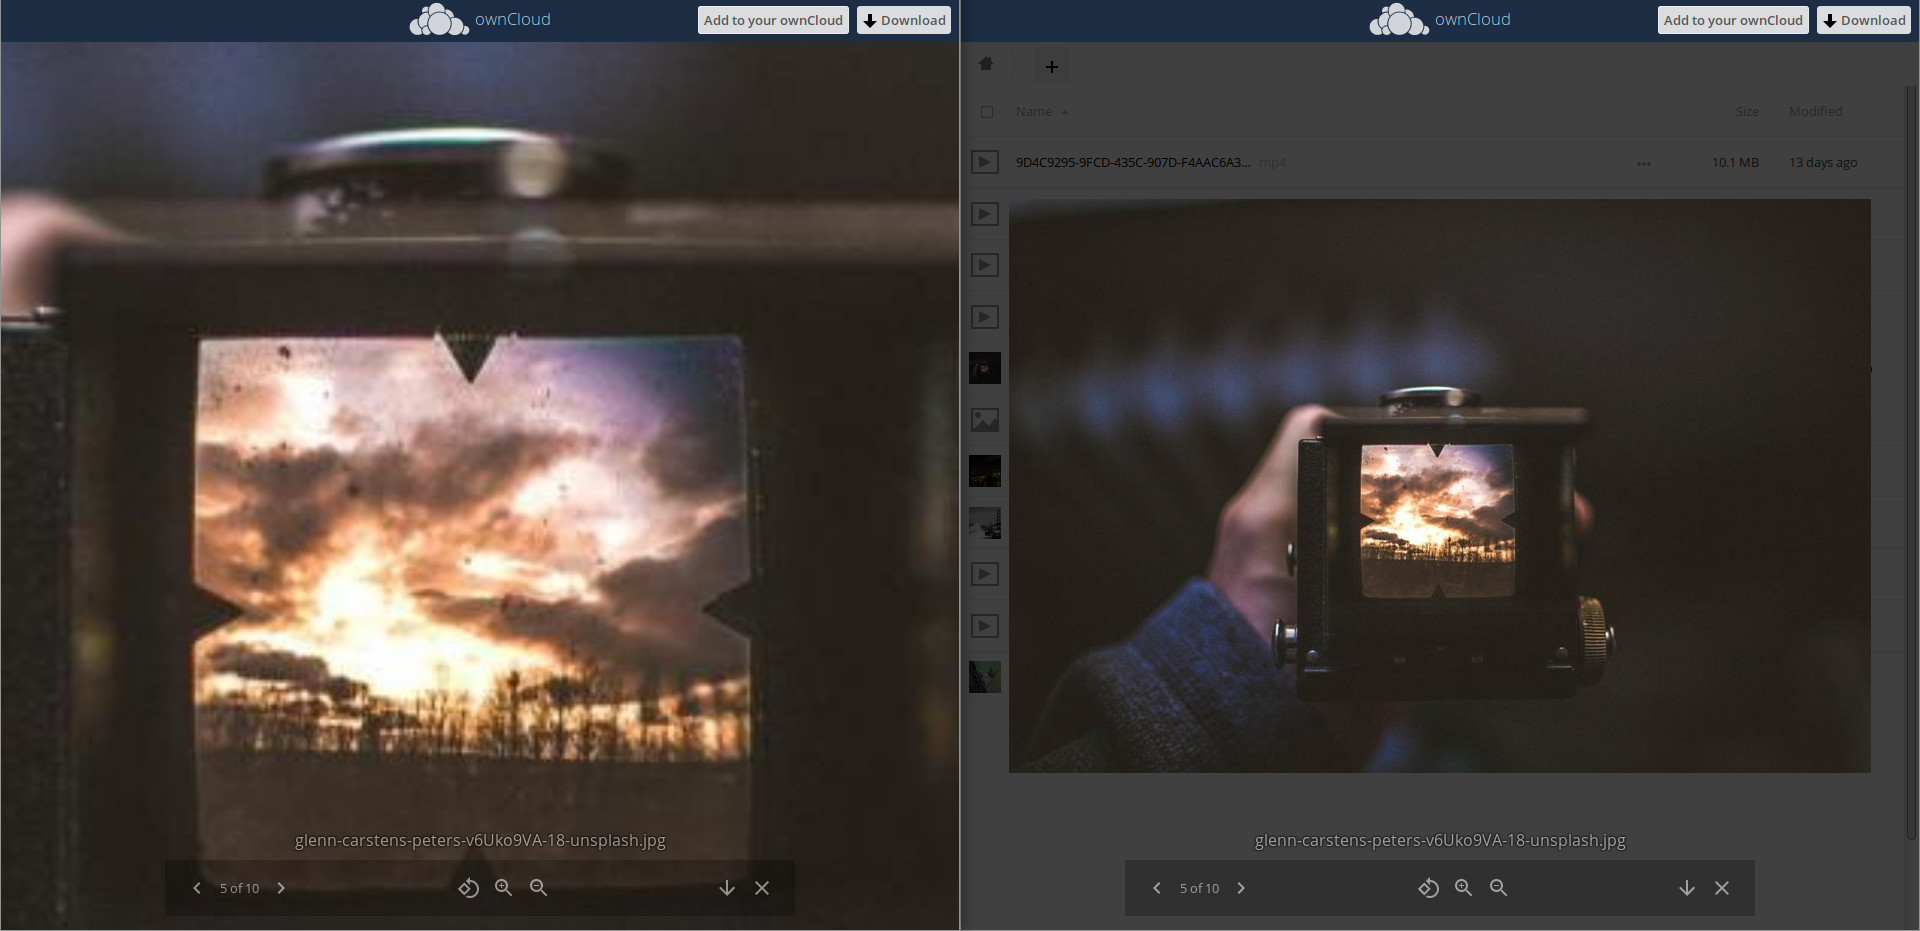 ownCloud-media viewer zoom side by side